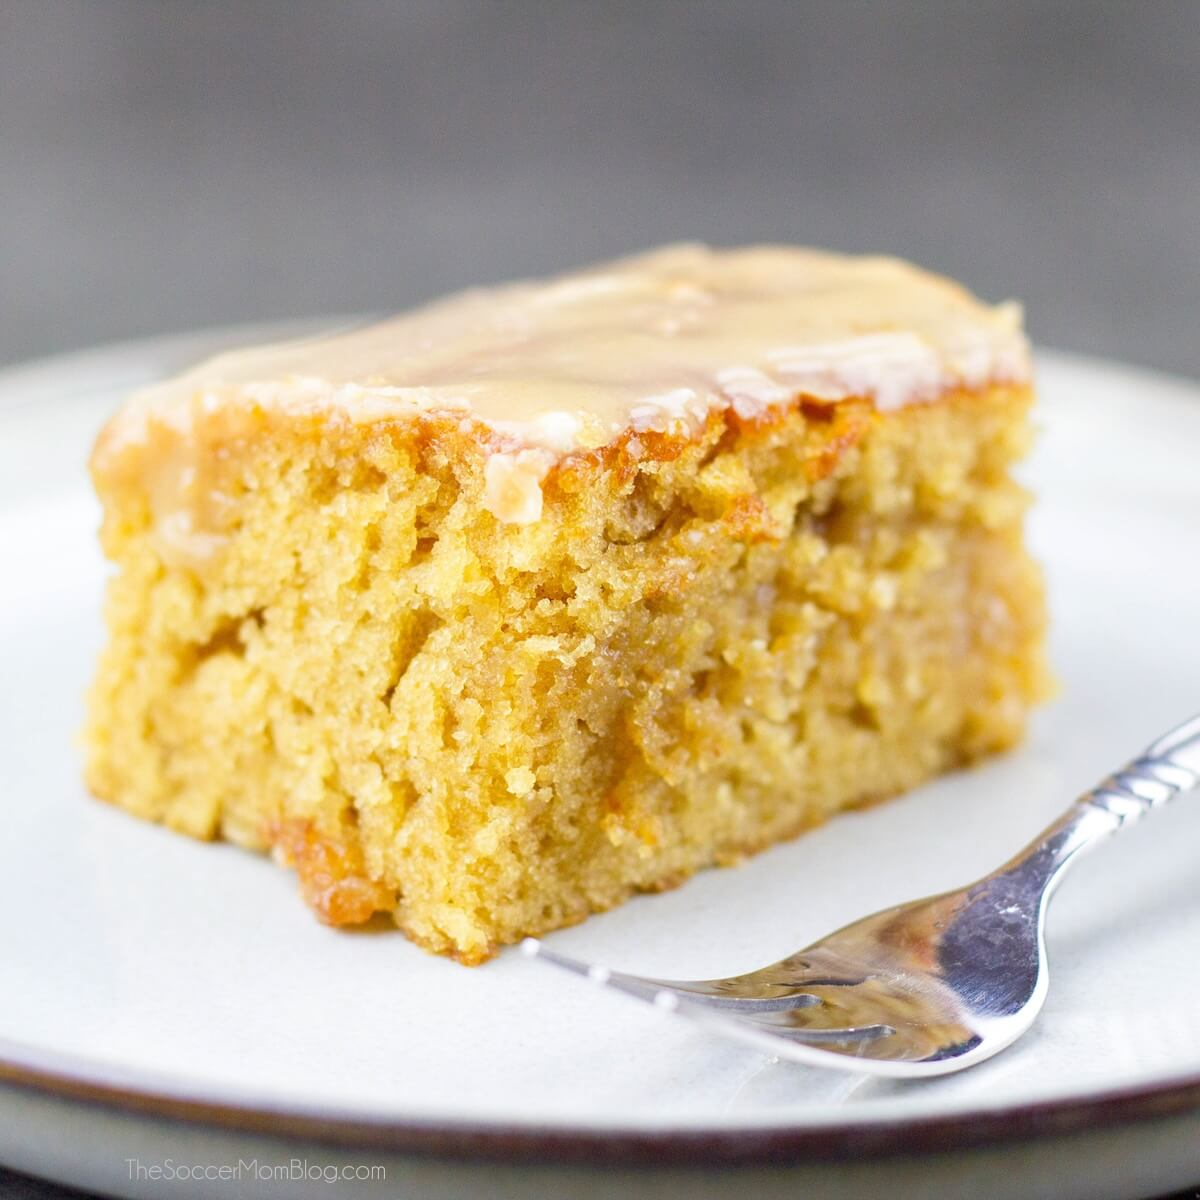 slice of peanut butter sheet cake with glaze